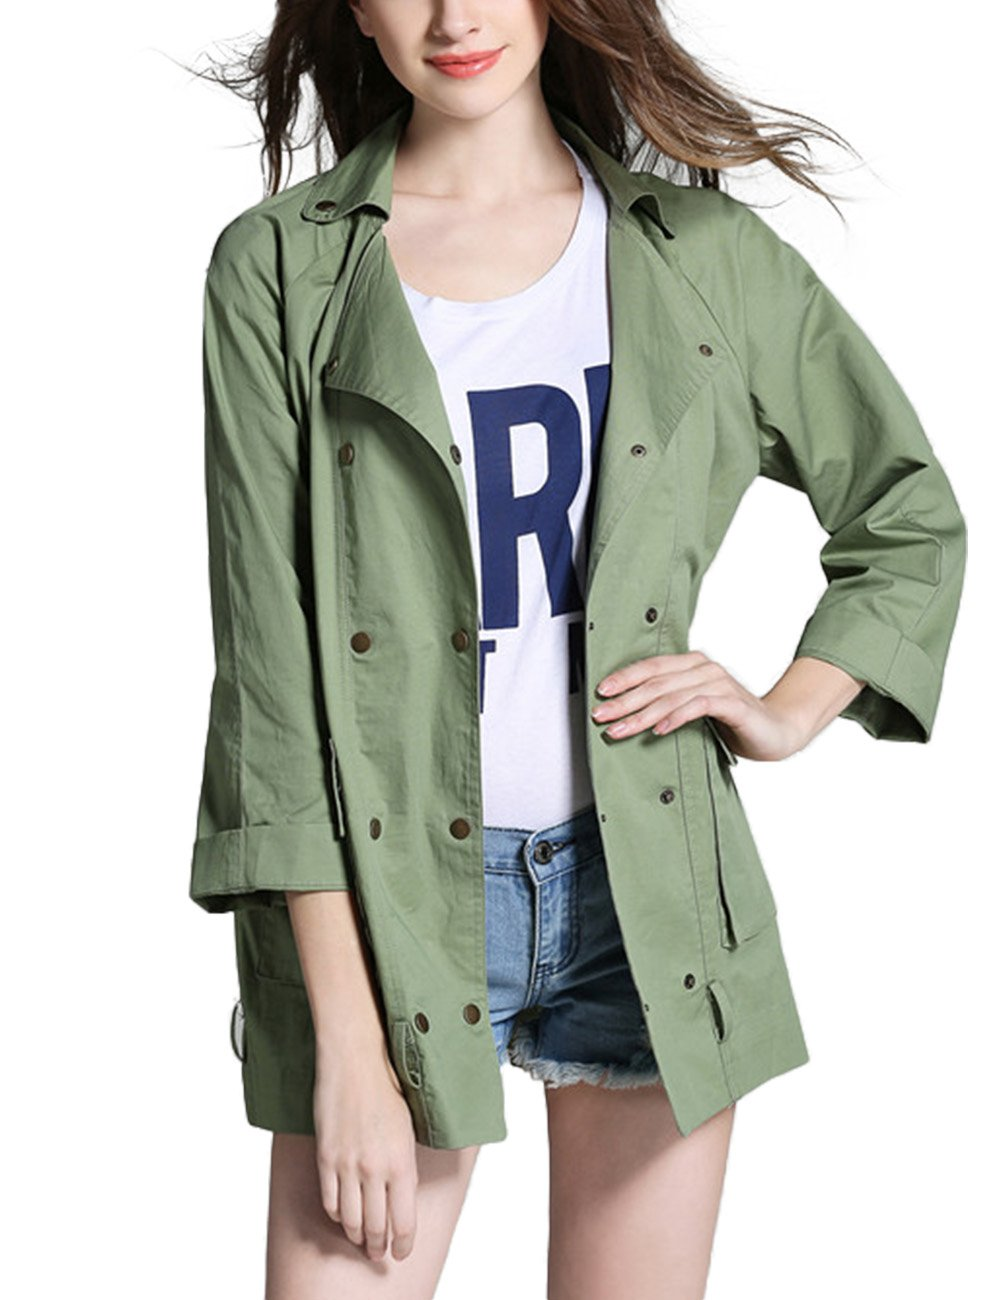 Accreate Women's Casual Fashion Simple Lapel 3/4 Sleeve Double-Breasted Jacket Coat Army Green For Three Quarter